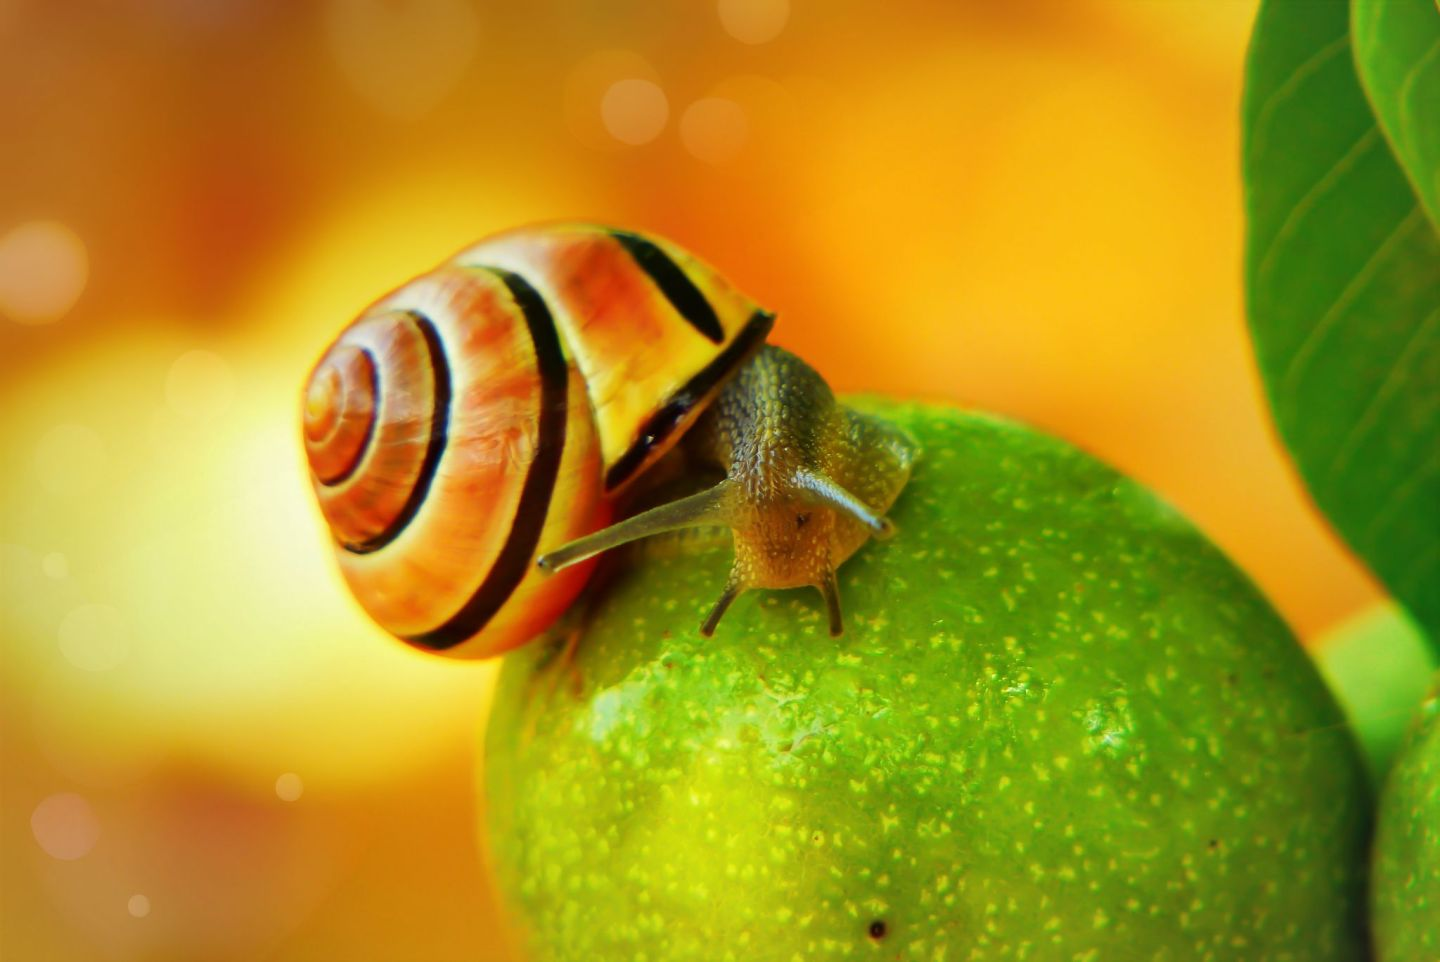 snail on apple